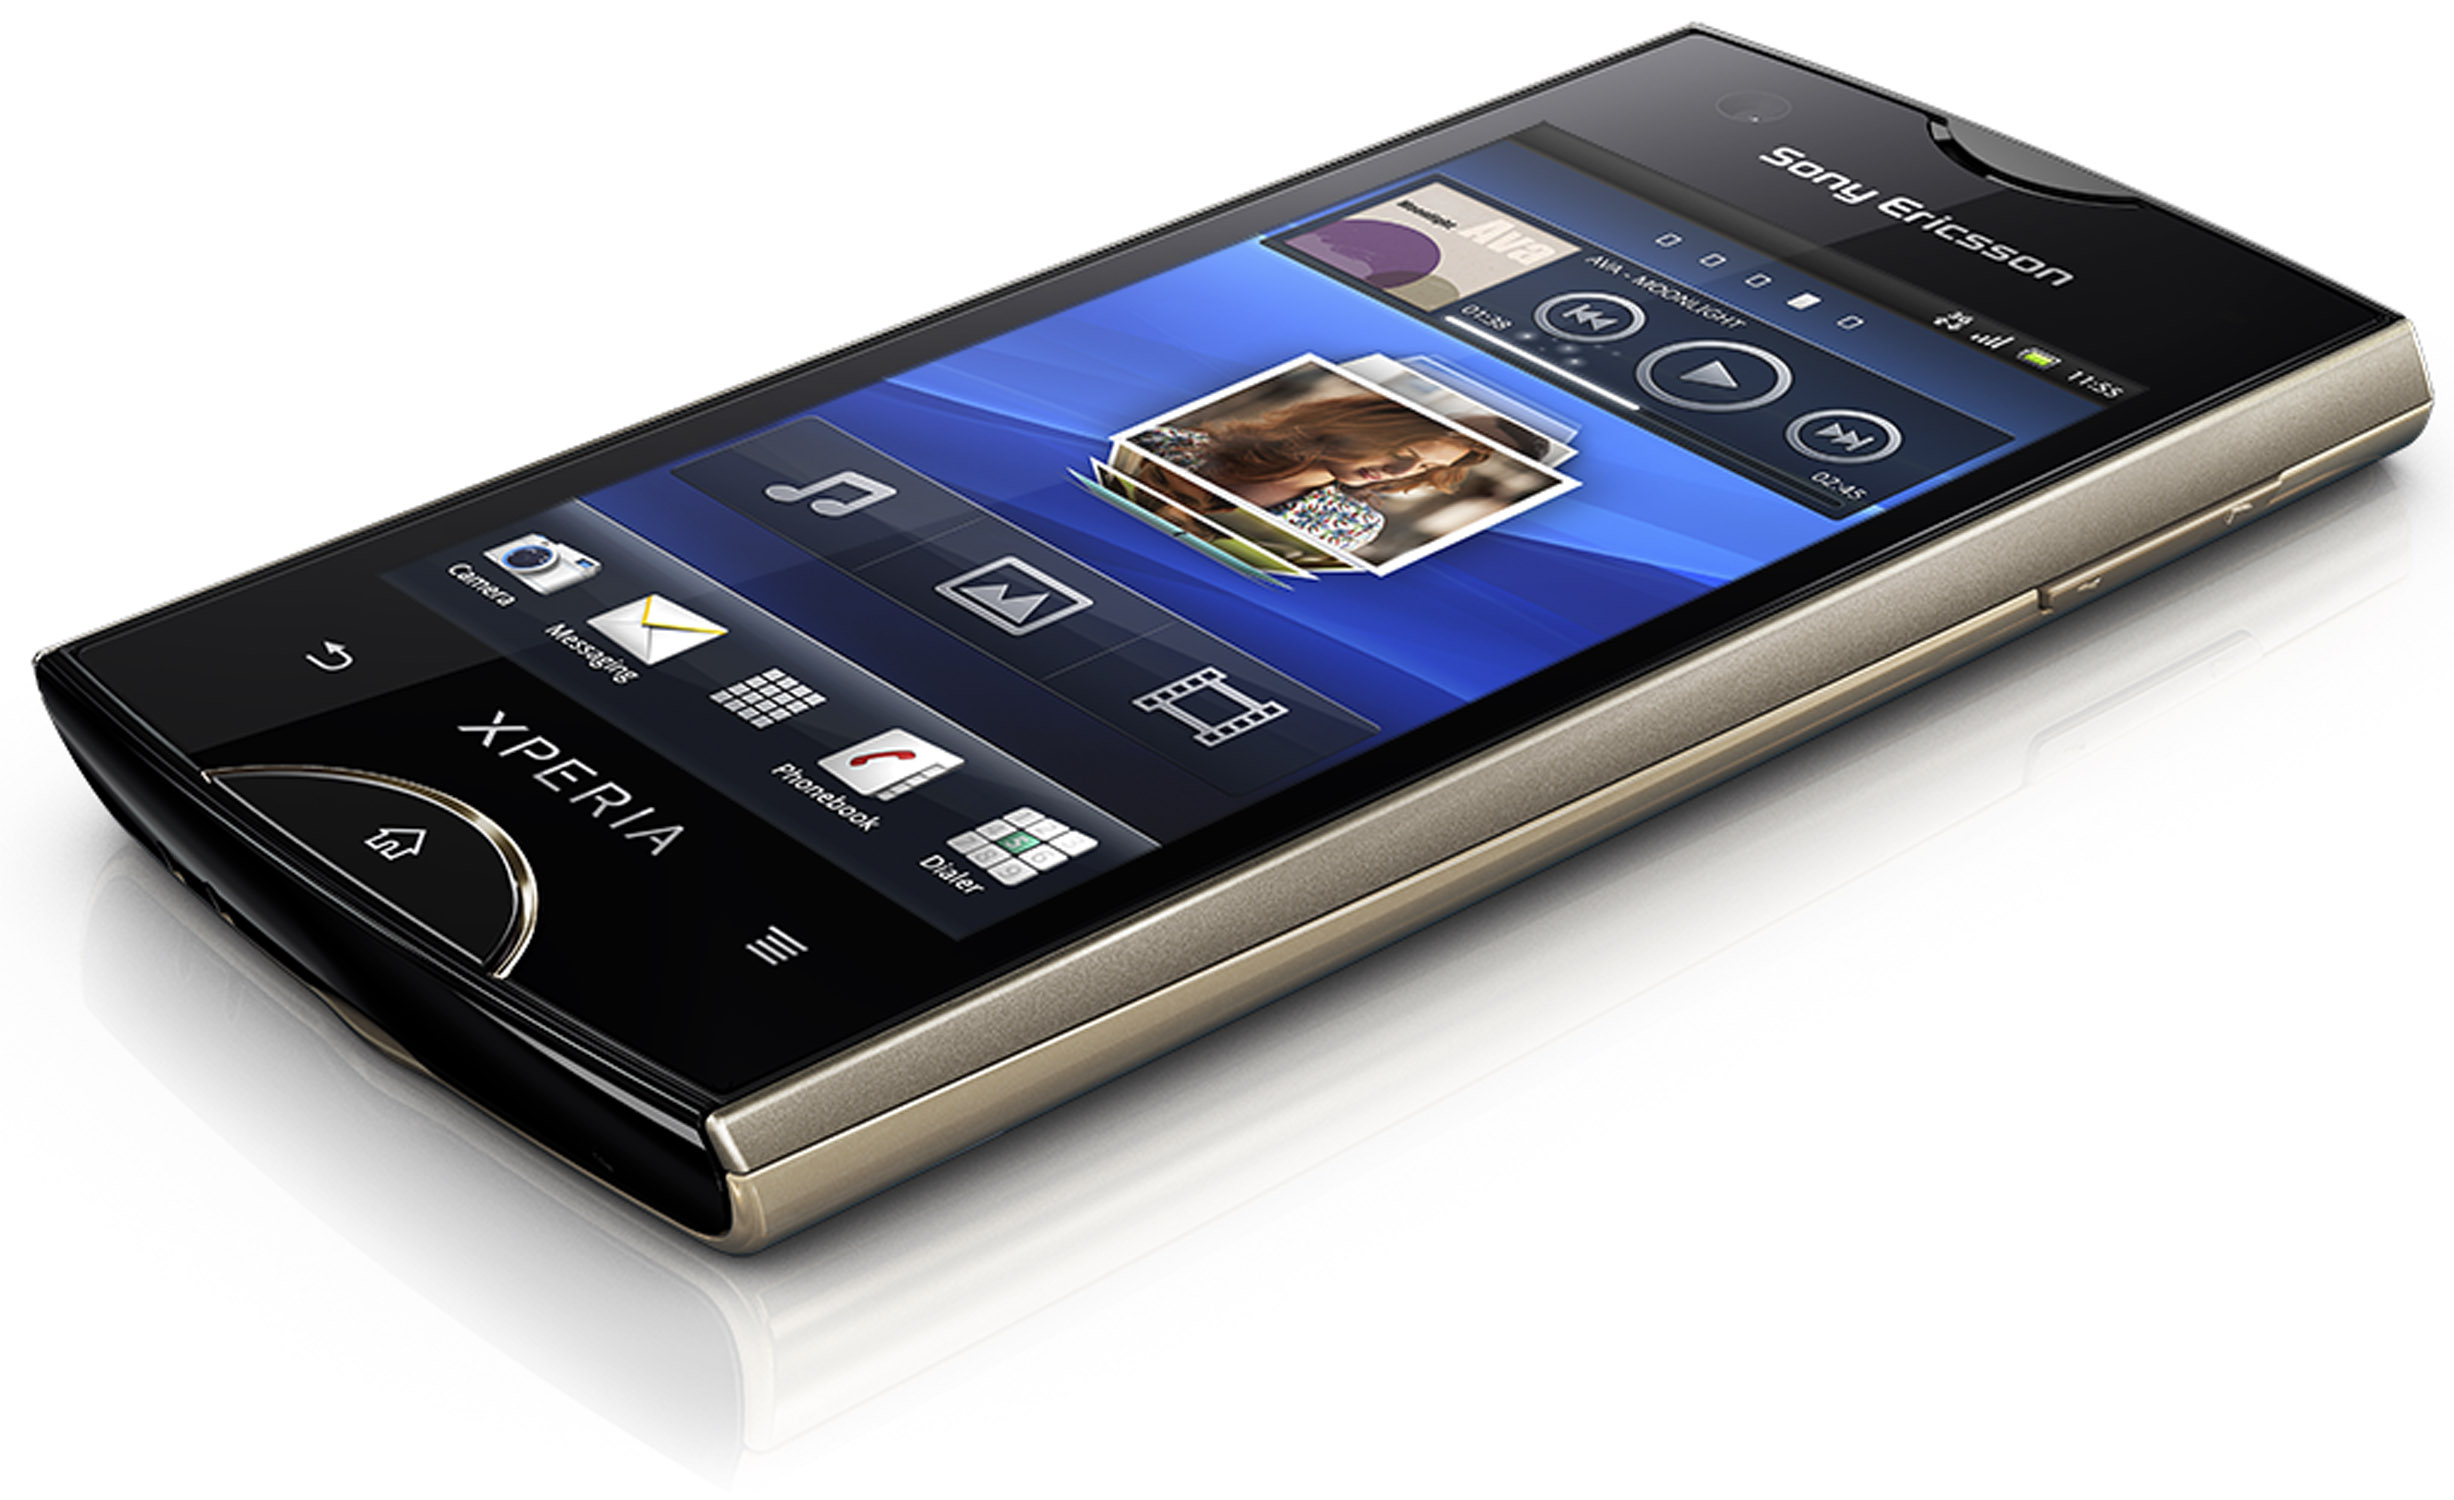 Phone Sony Ericson Android Phone sony ericsson goes for android supremacy with new xperia ray